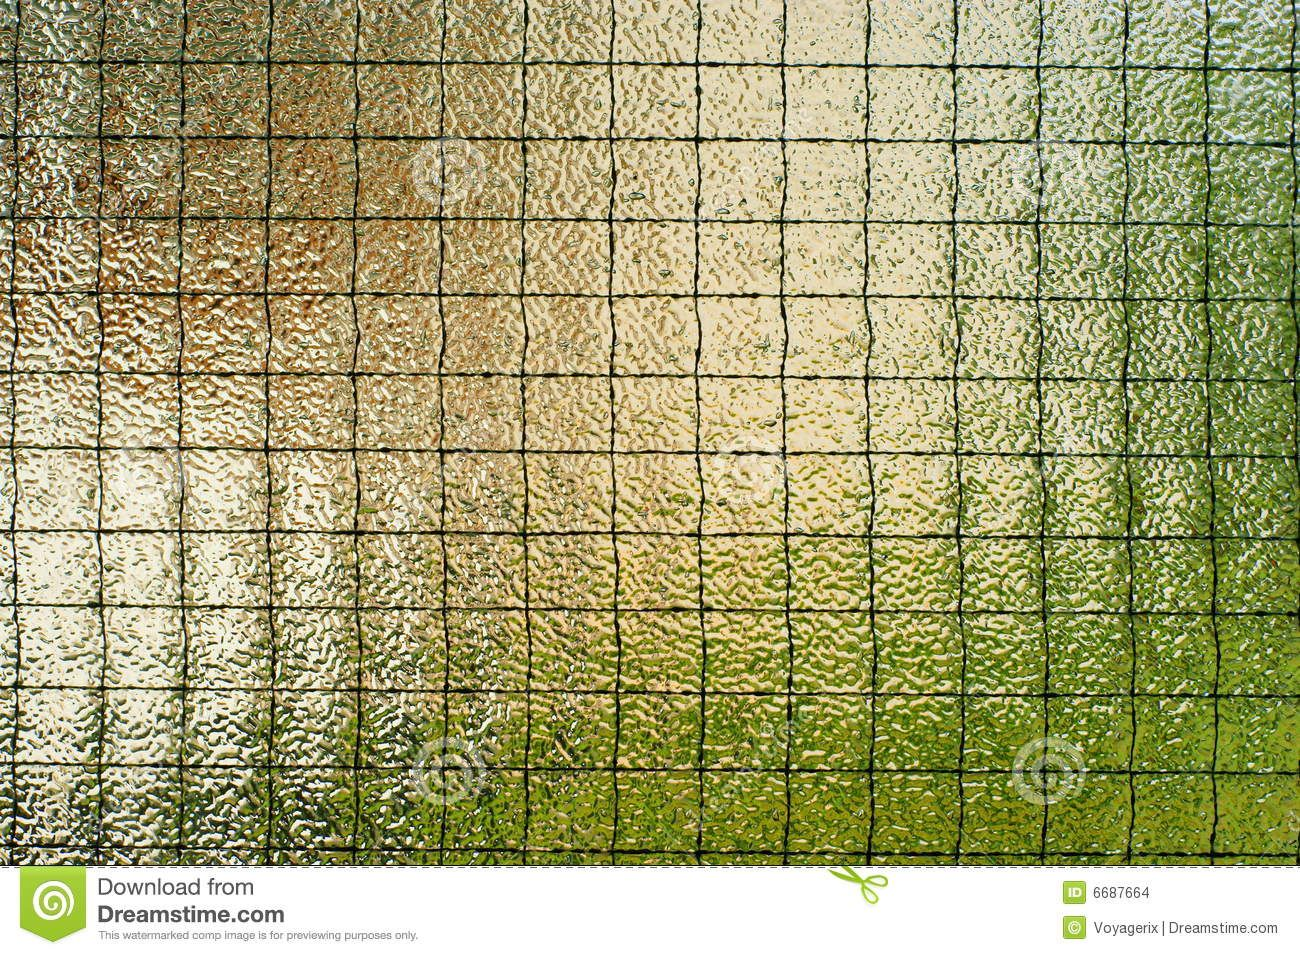 clear textured glass reinforced with wire mesh inside | garden green ...